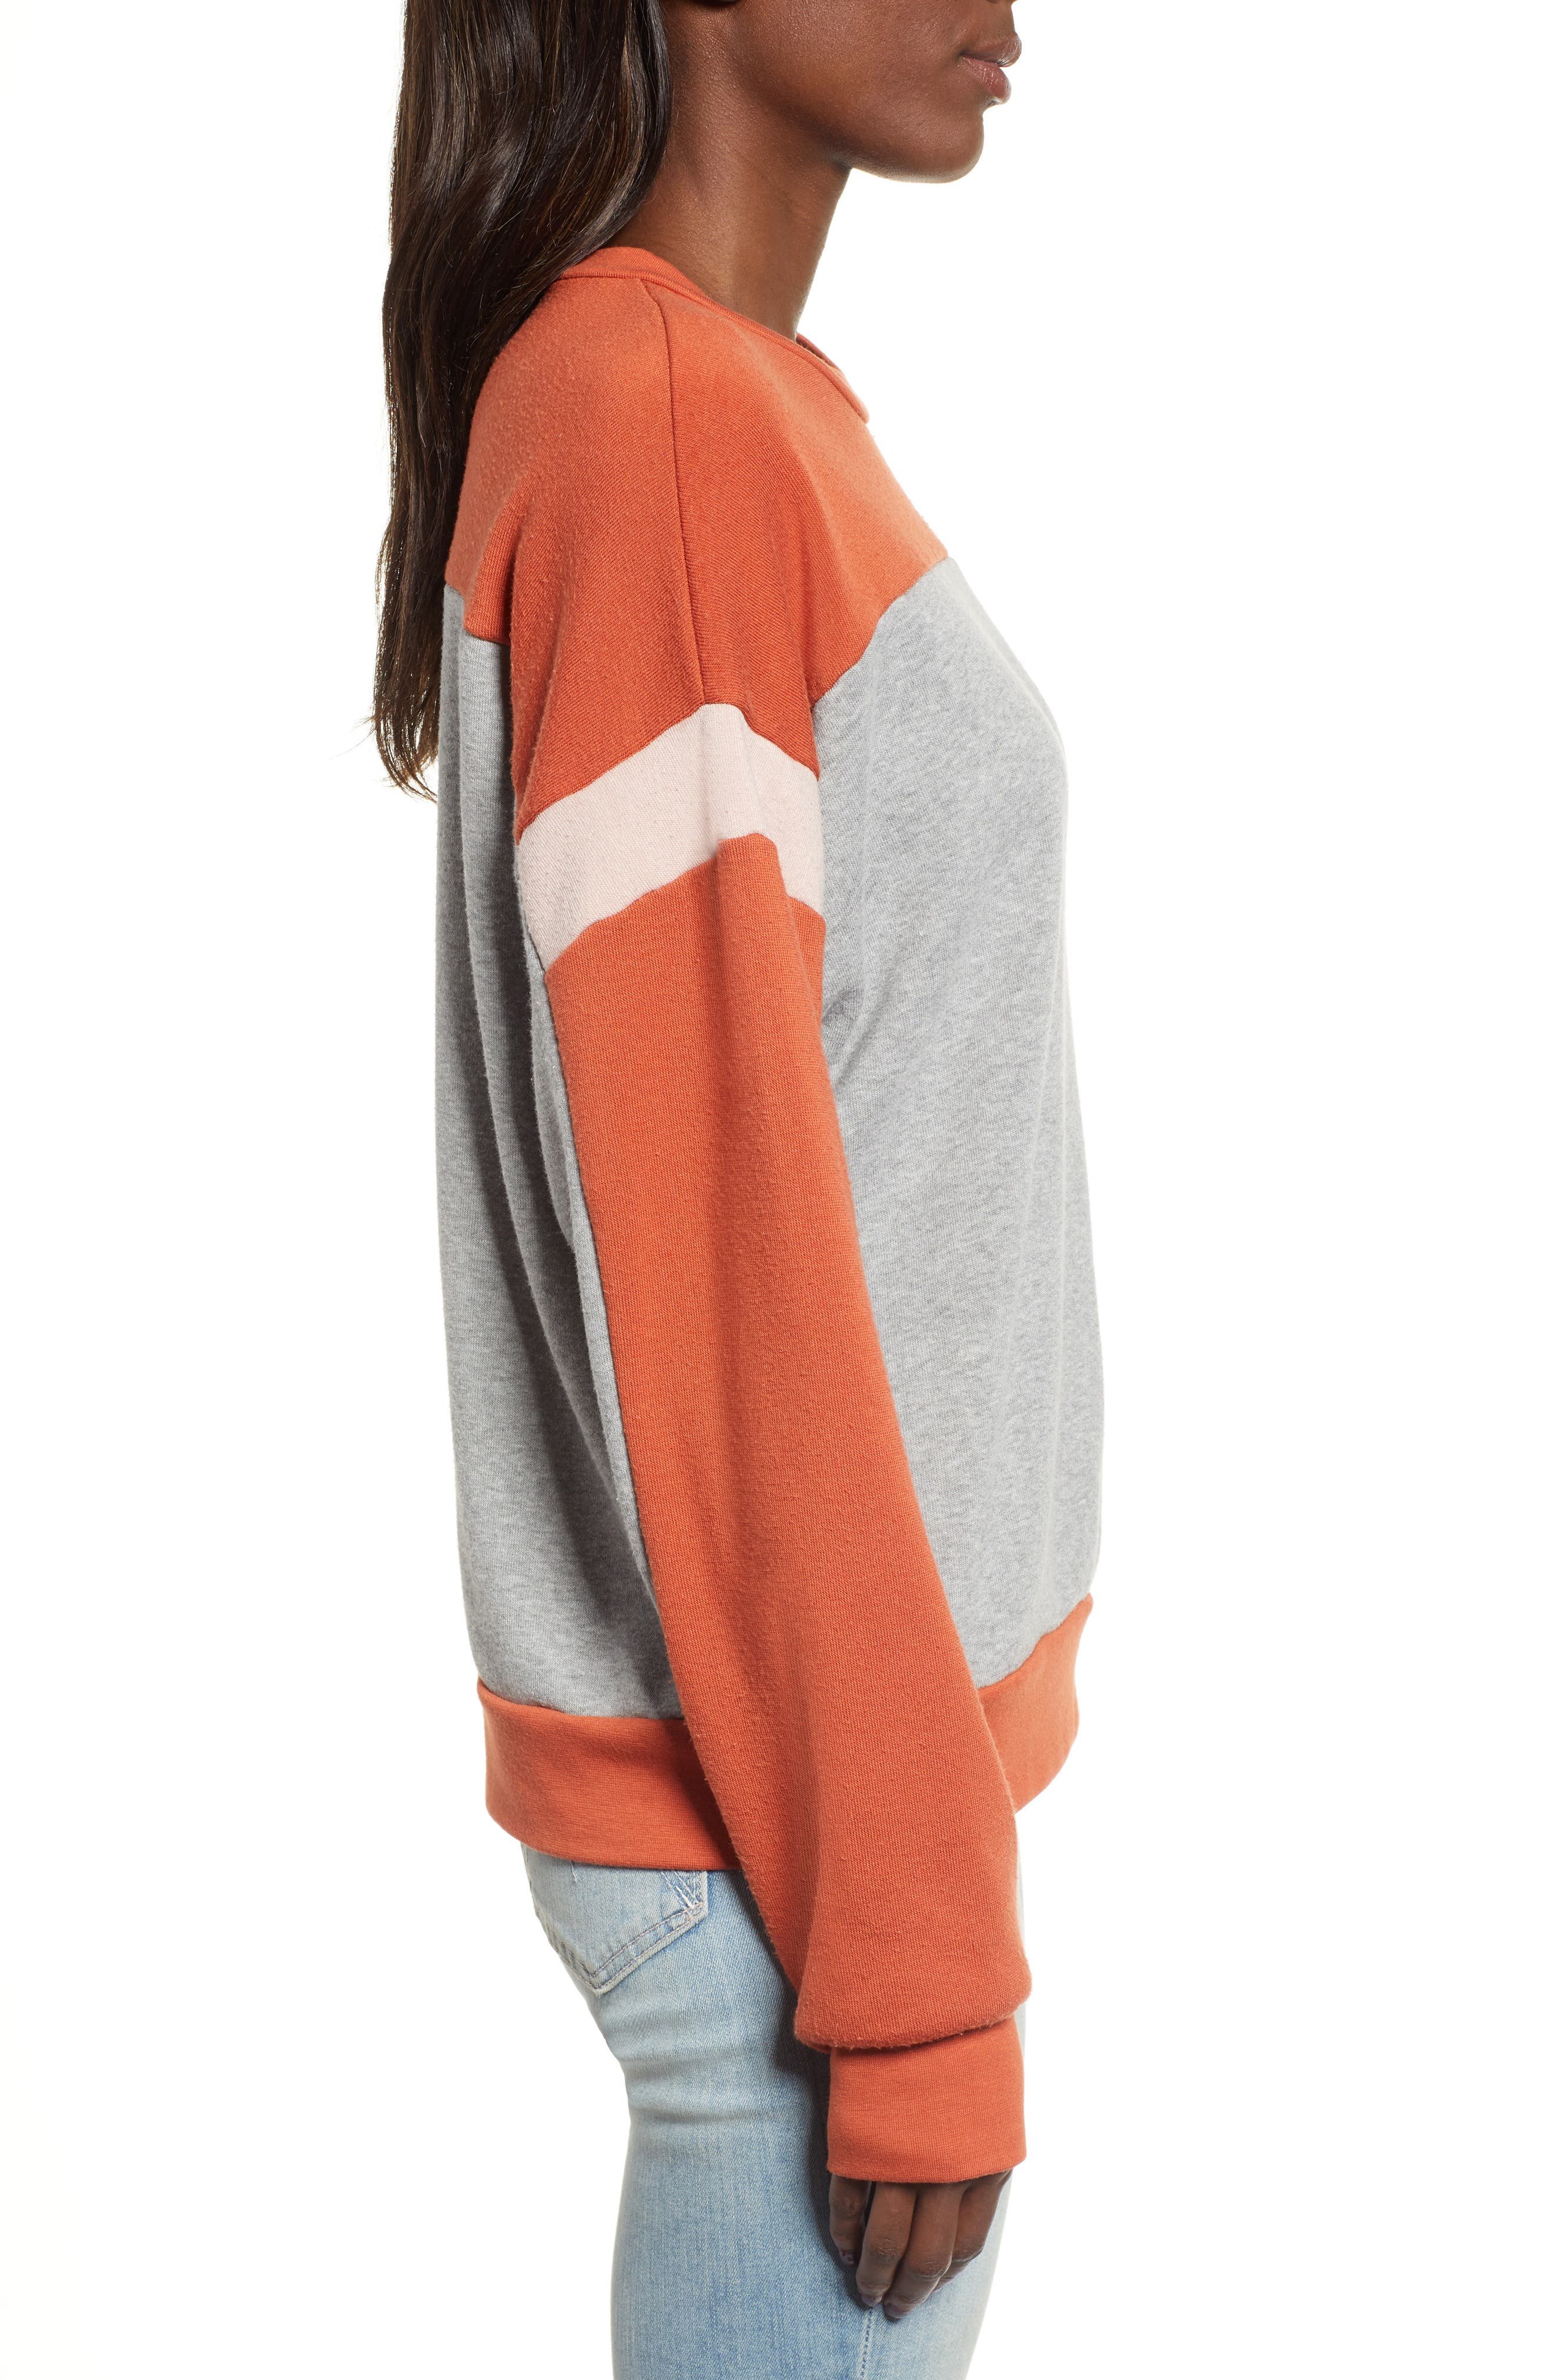 Rewind Colorblock Sweatshirt,                             Alternate thumbnail 3, color,                             HEATHER GREY/ SERRANO